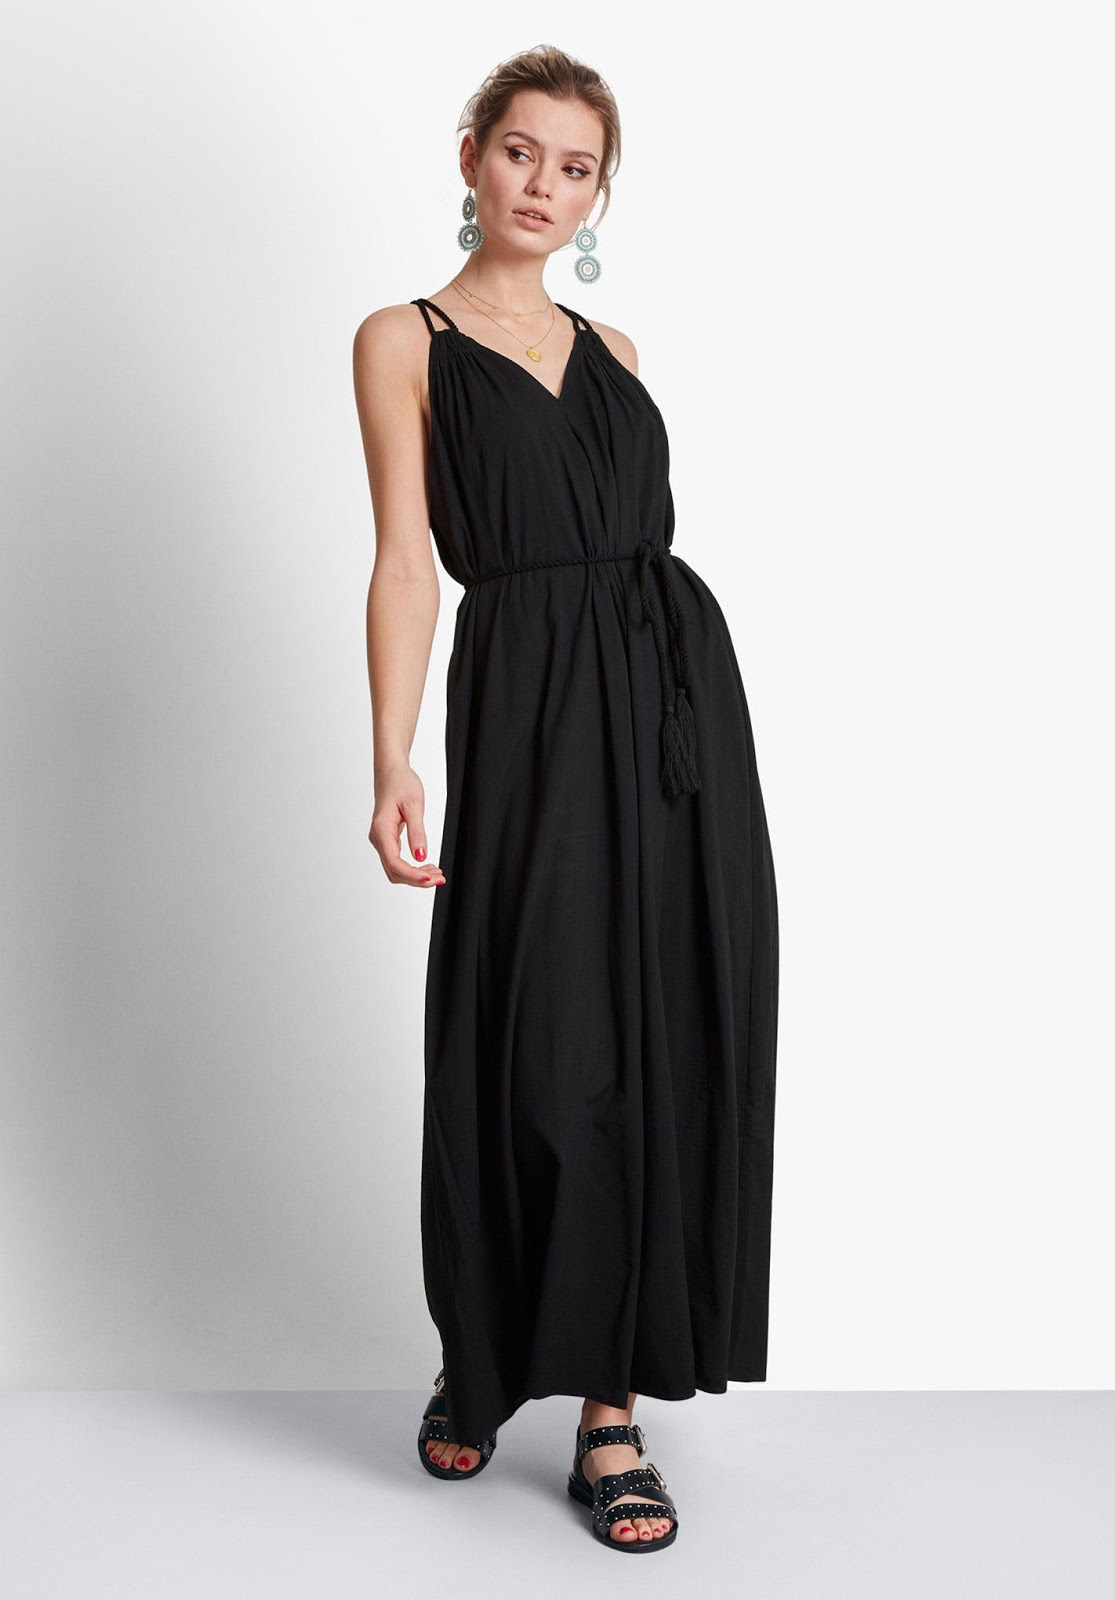 hush vali maxi dress